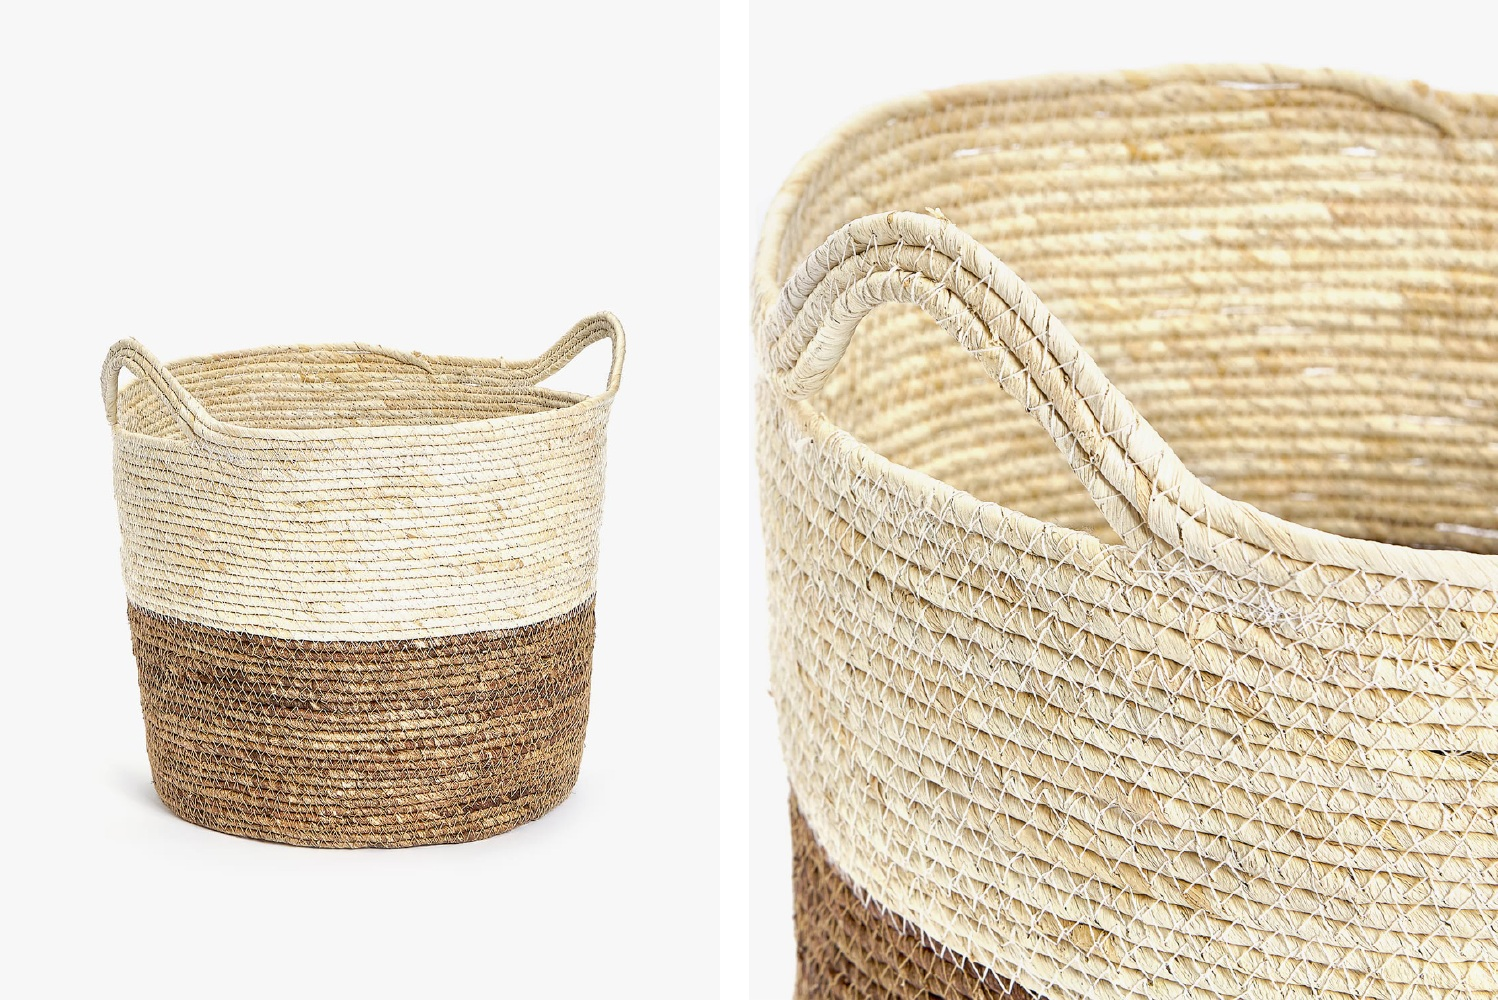 Corn leaves basket  - Official picture